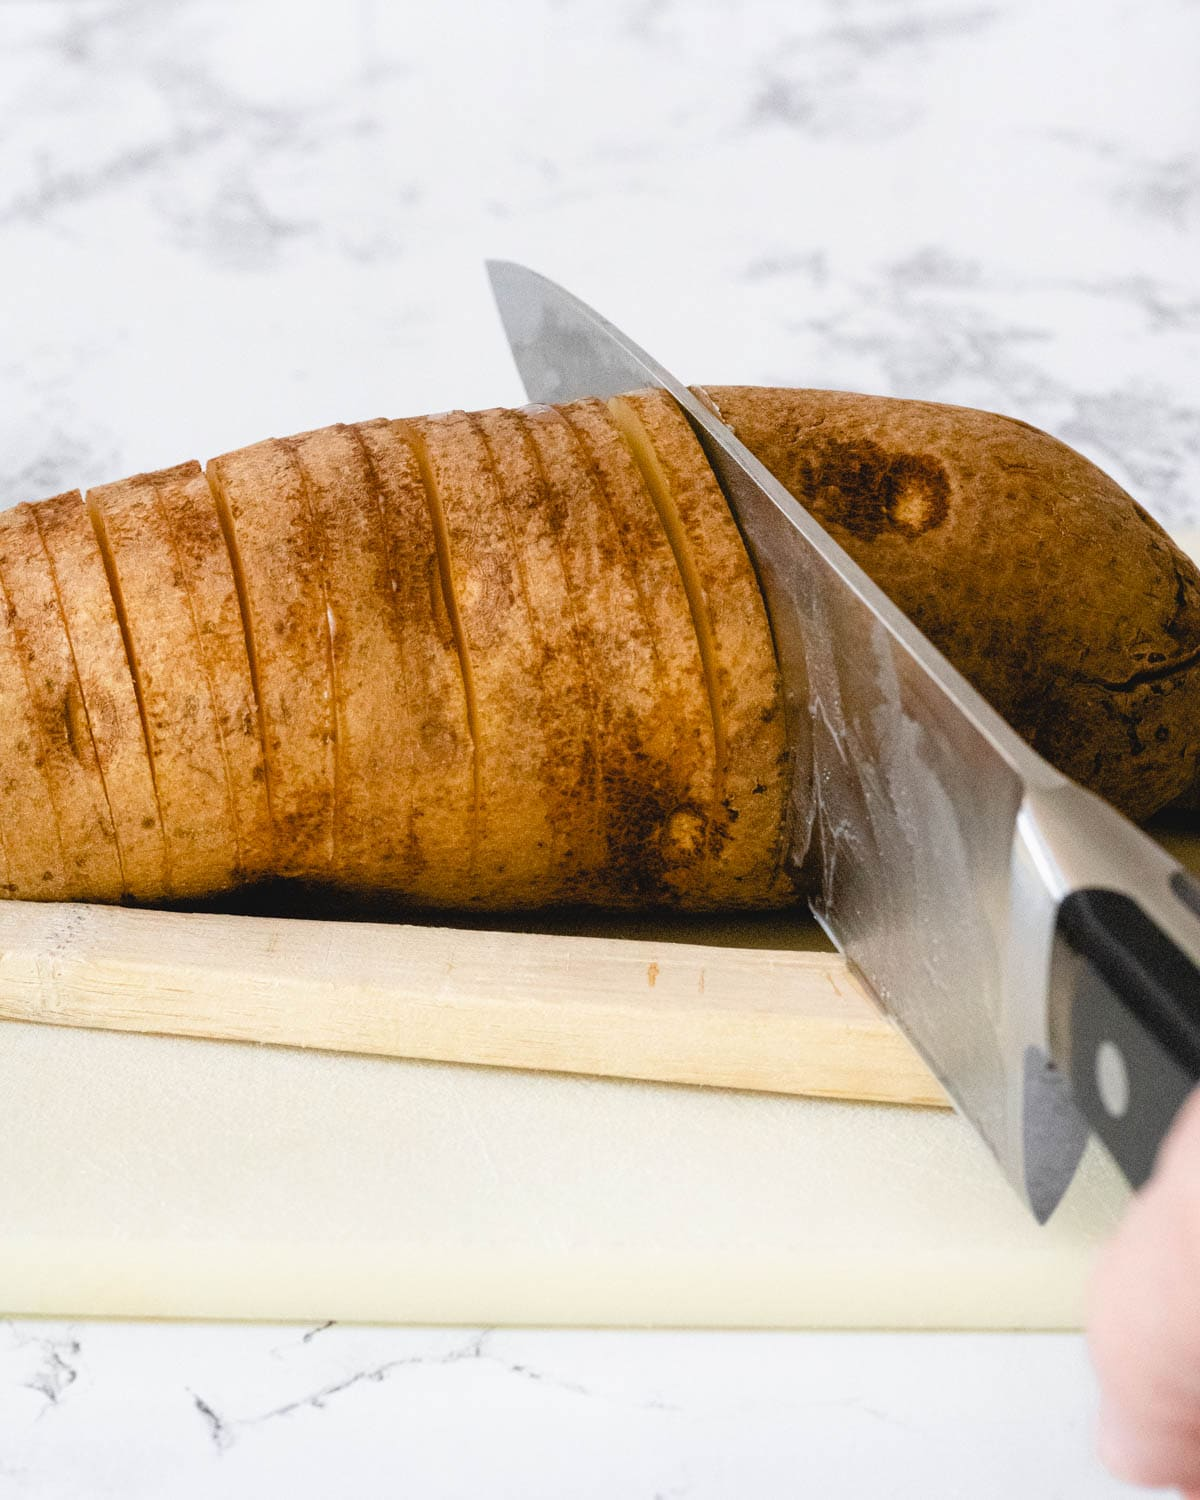 Slicing a potato in ¼-thick slices, using a spoon to stop the knife from cutting all the way through.